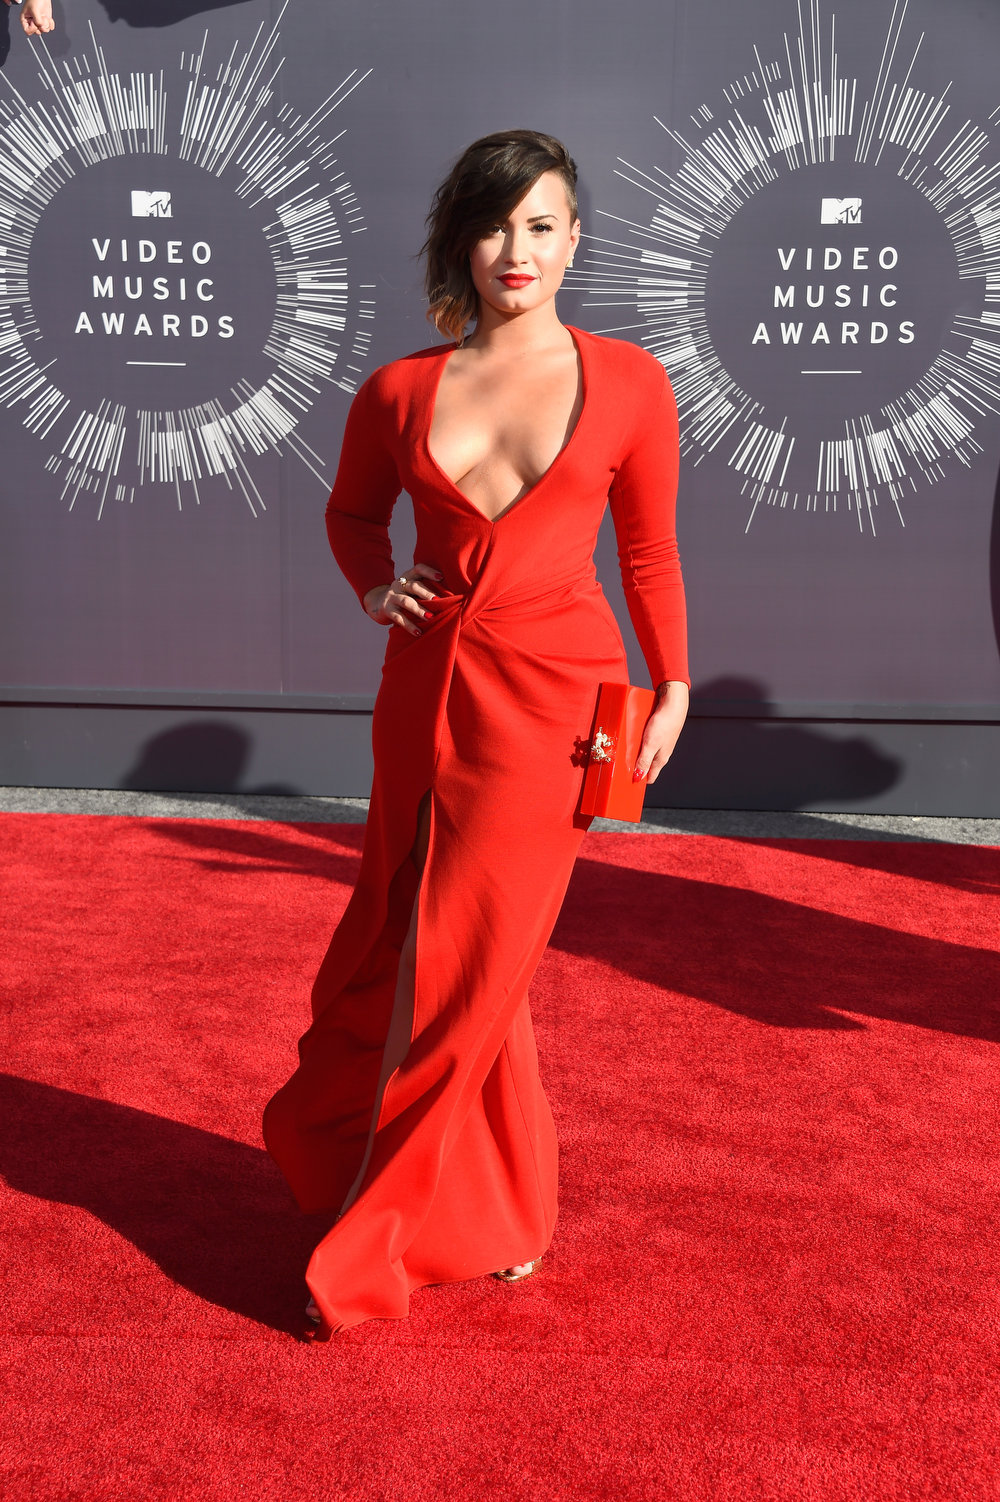 . Recording artist Demi Lovato attends the 2014 MTV Video Music Awards at The Forum on August 24, 2014 in Inglewood, California.  (Photo by Frazer Harrison/Getty Images)